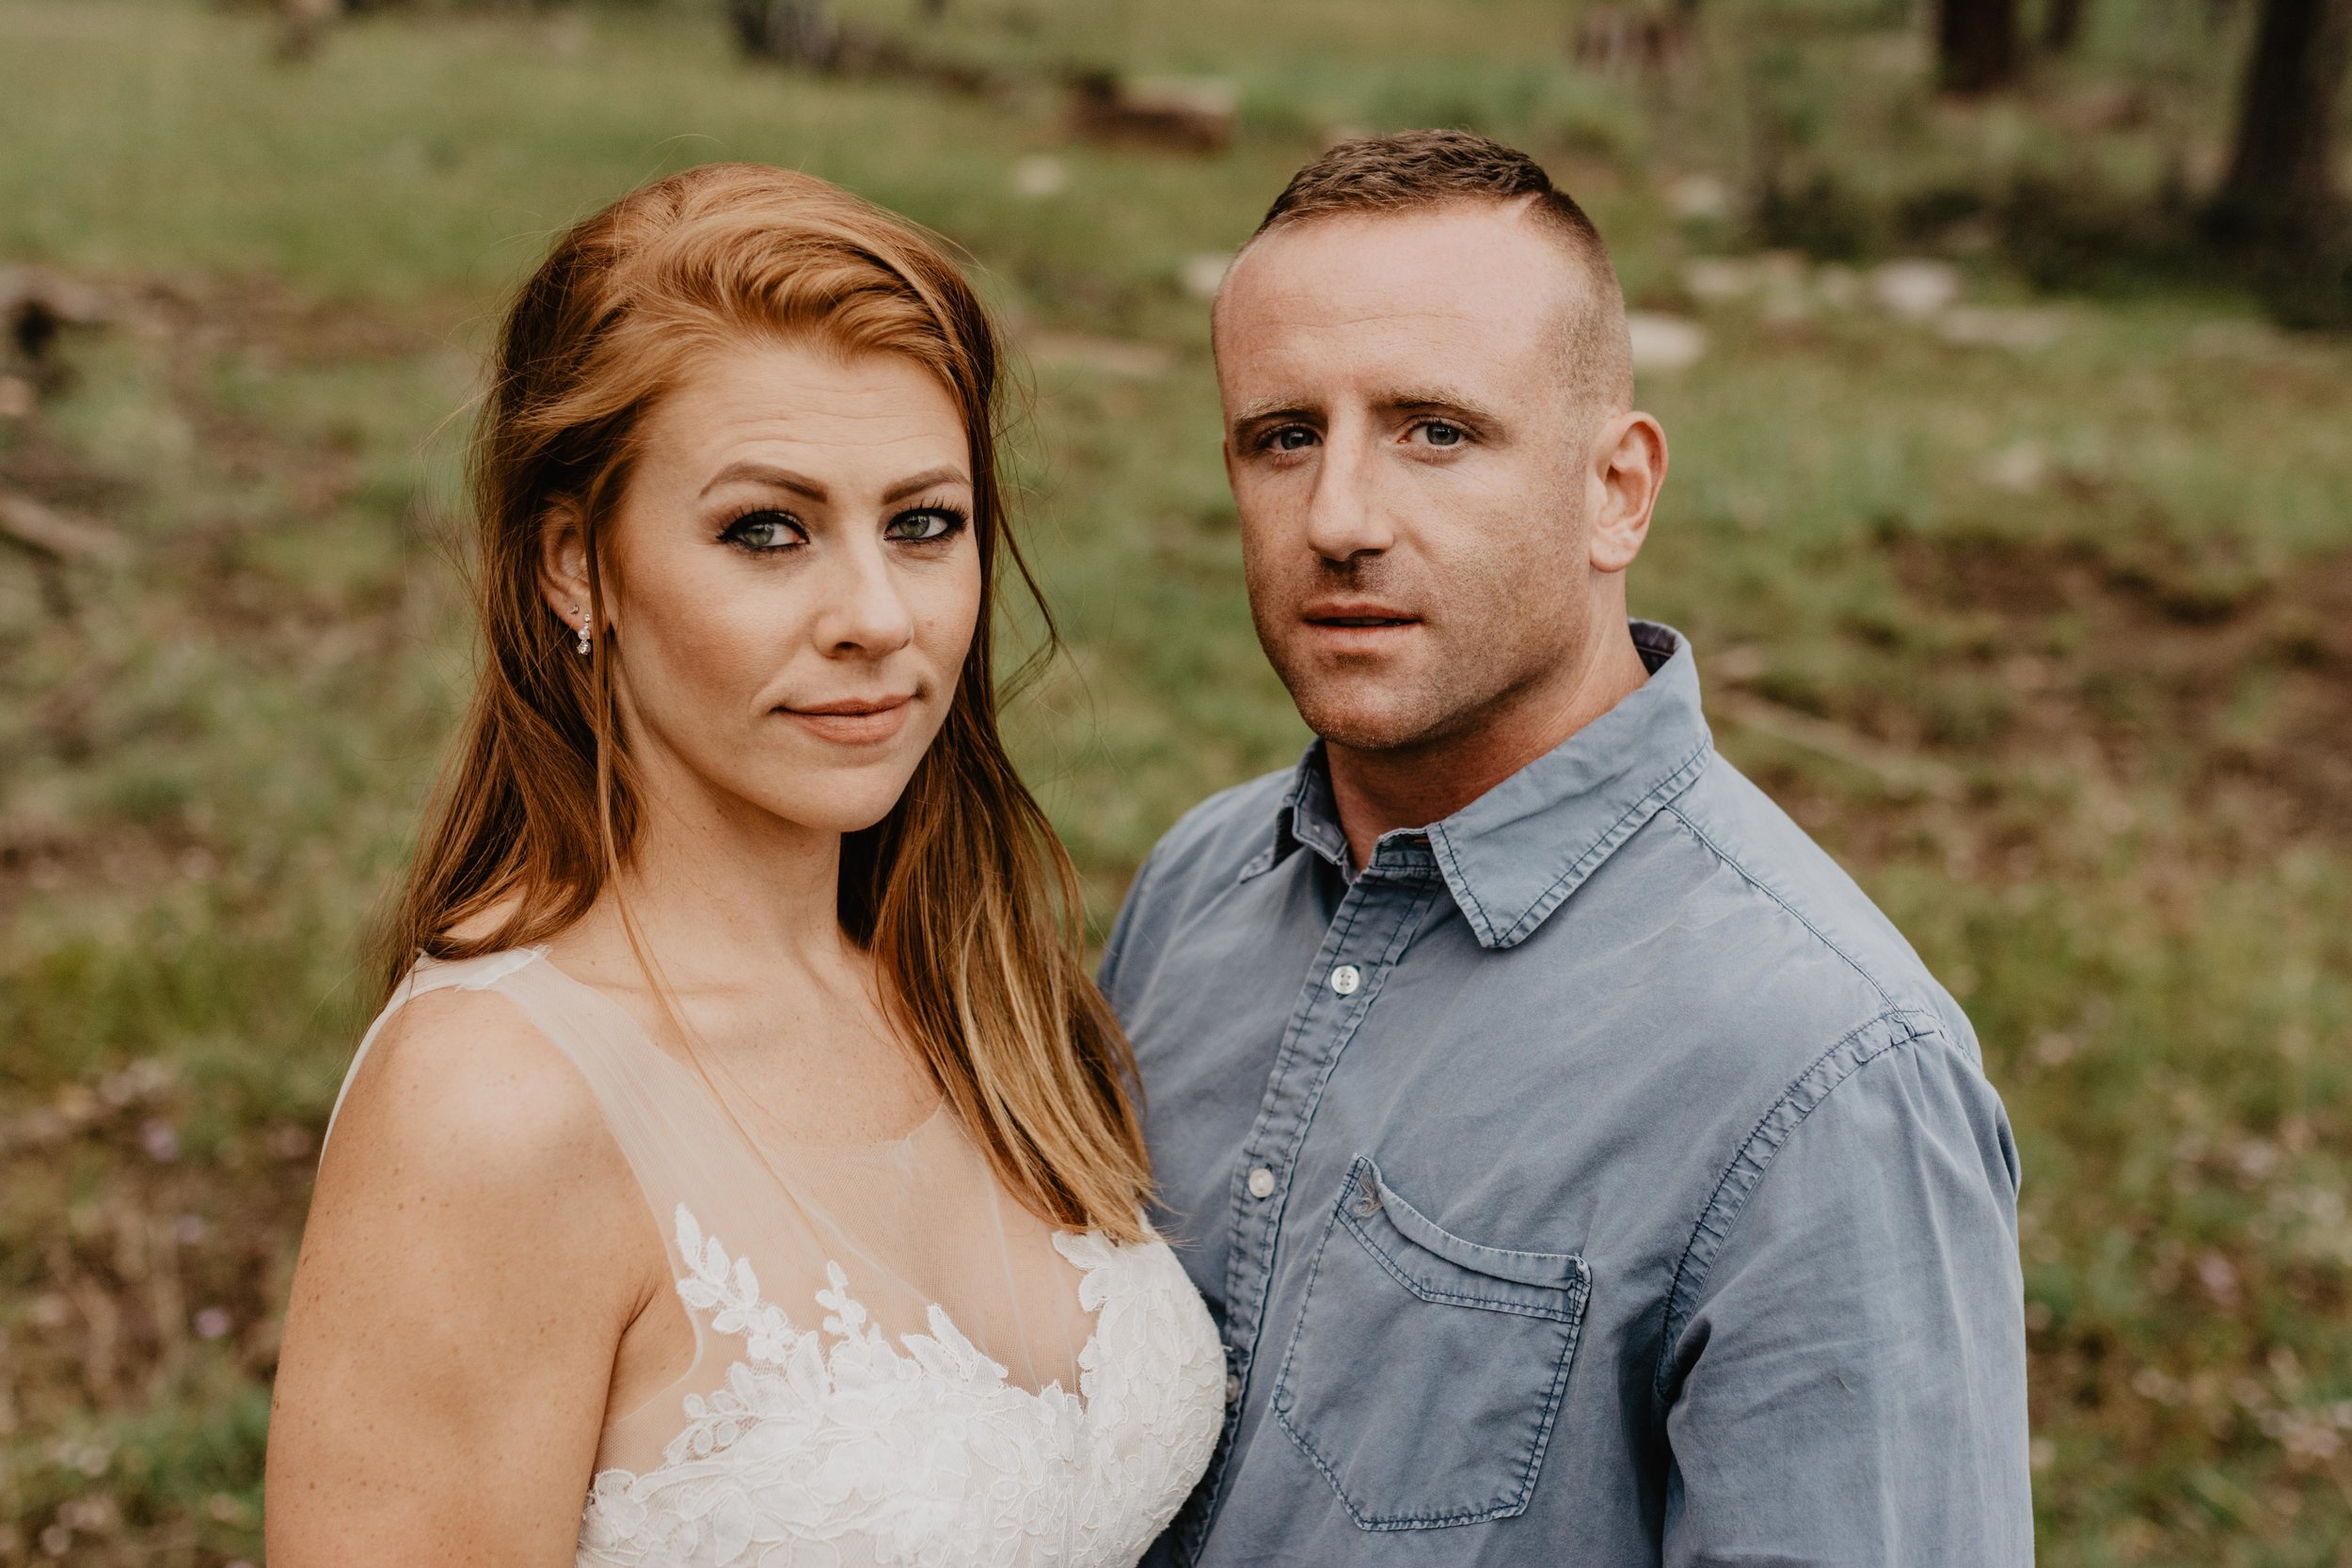 Arizona Adventure Elopement Photographer - Phoenix Wedding Dress Rental